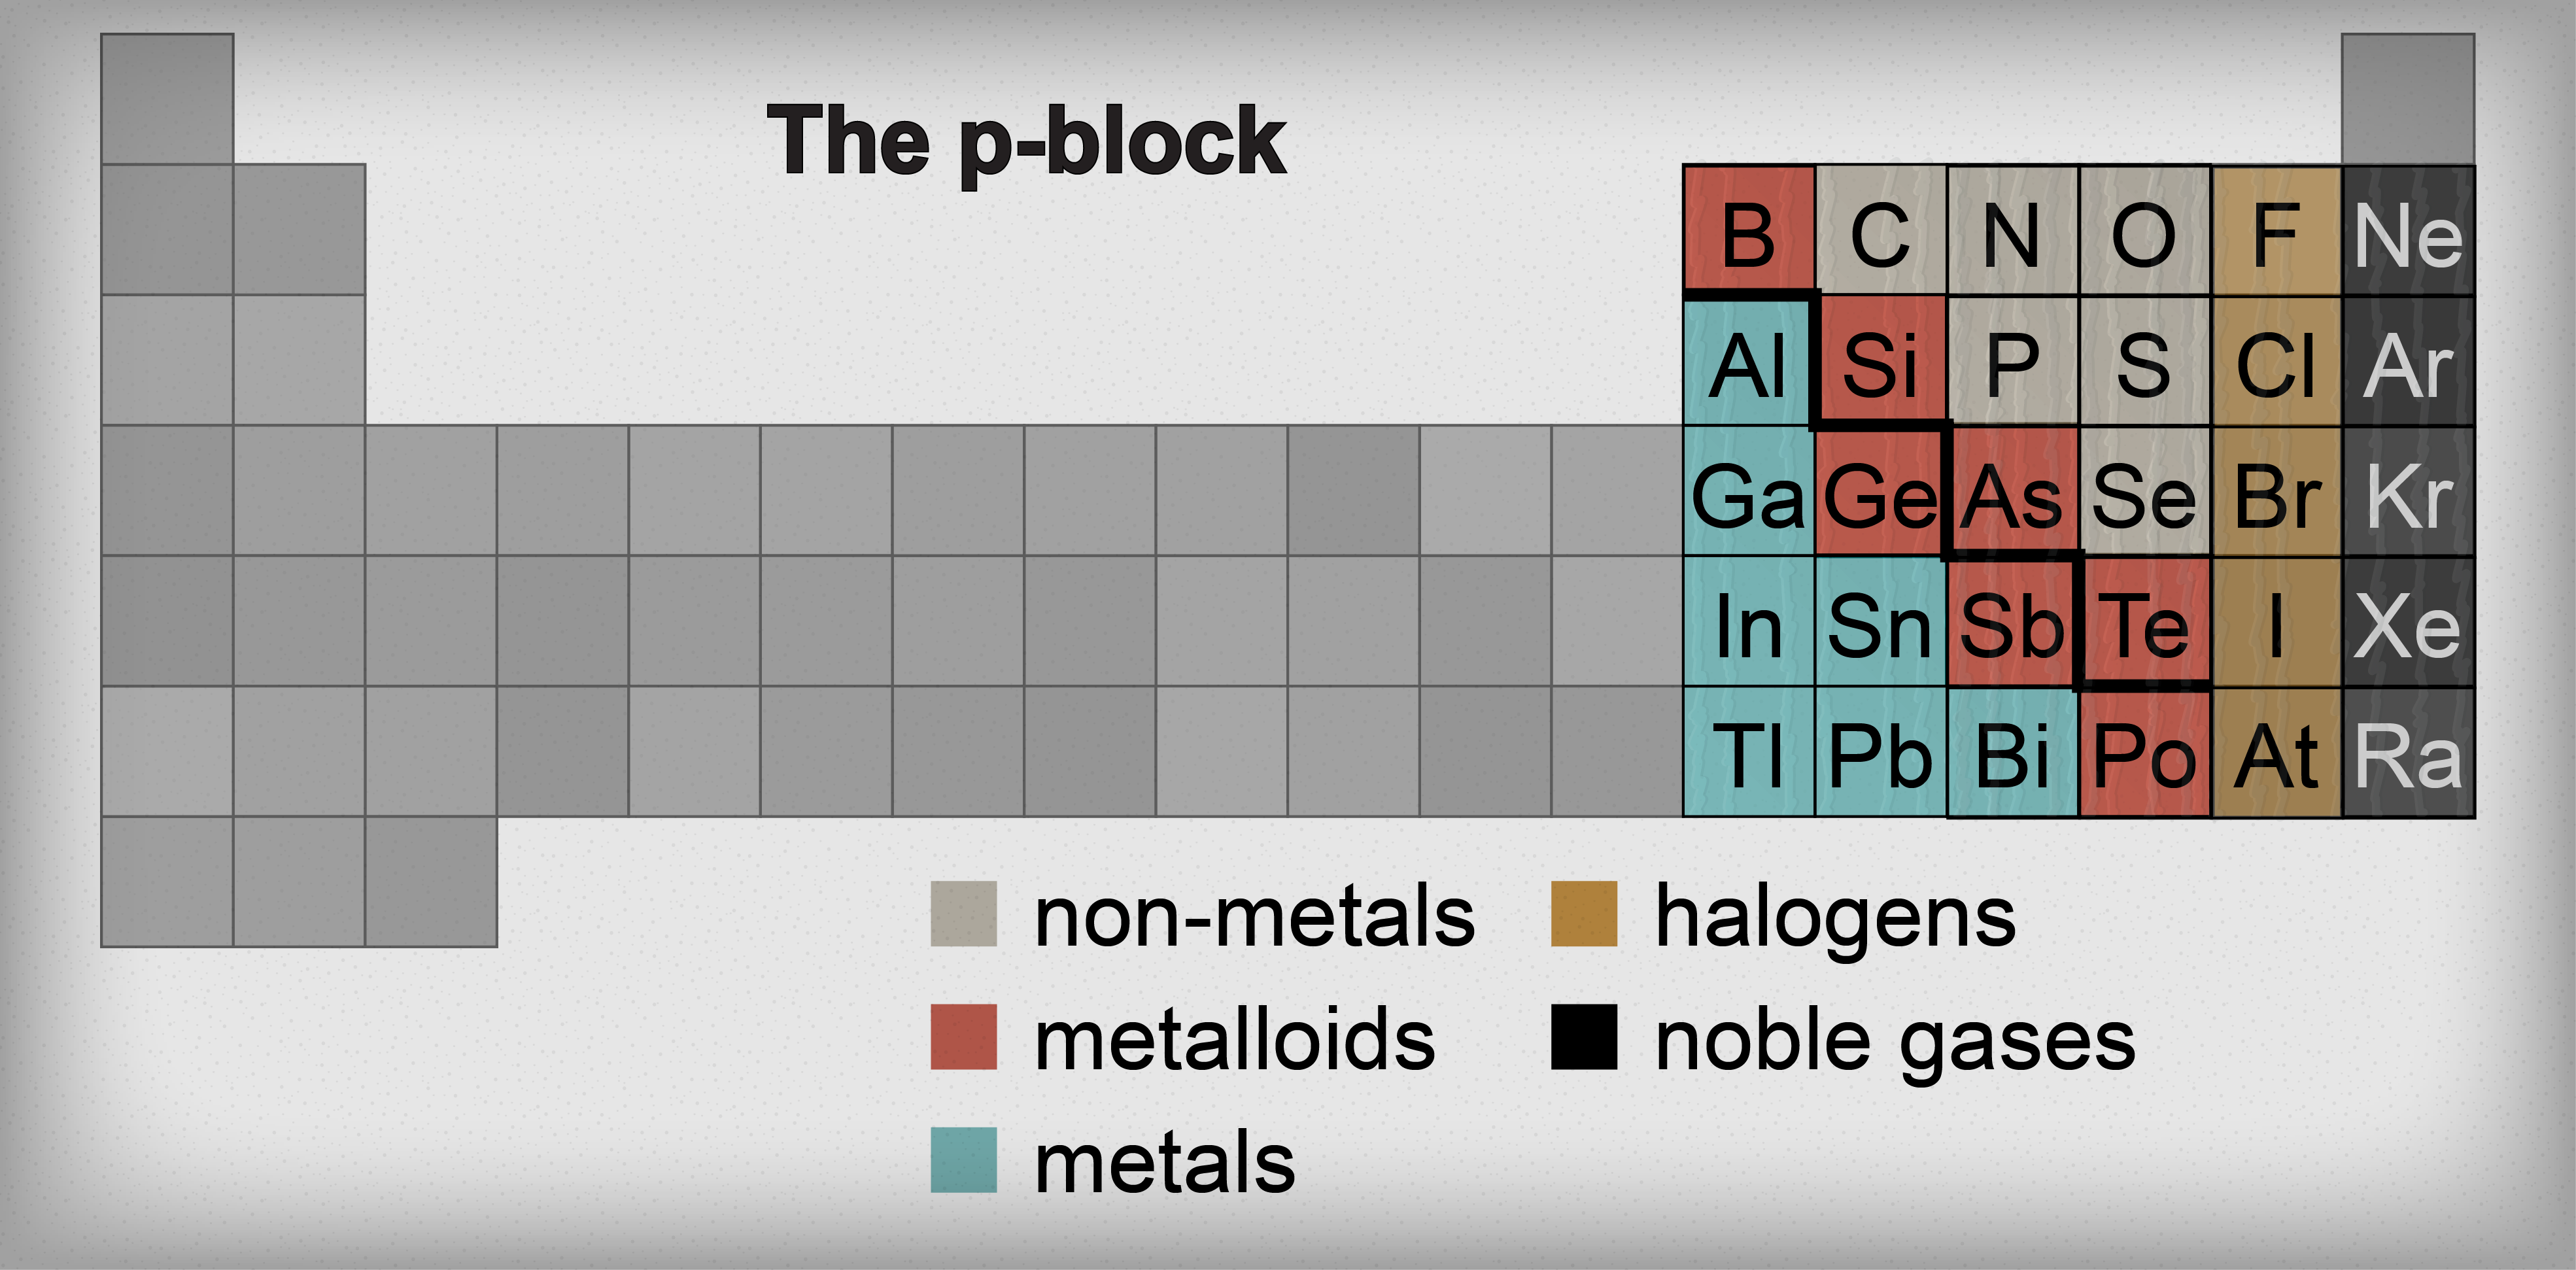 Chemistry metals metalloids and non metals shmoop chemistry in this section dividing elements into columns is so 2000 and late instead the p block is split into metals metalloids and non metals gamestrikefo Gallery